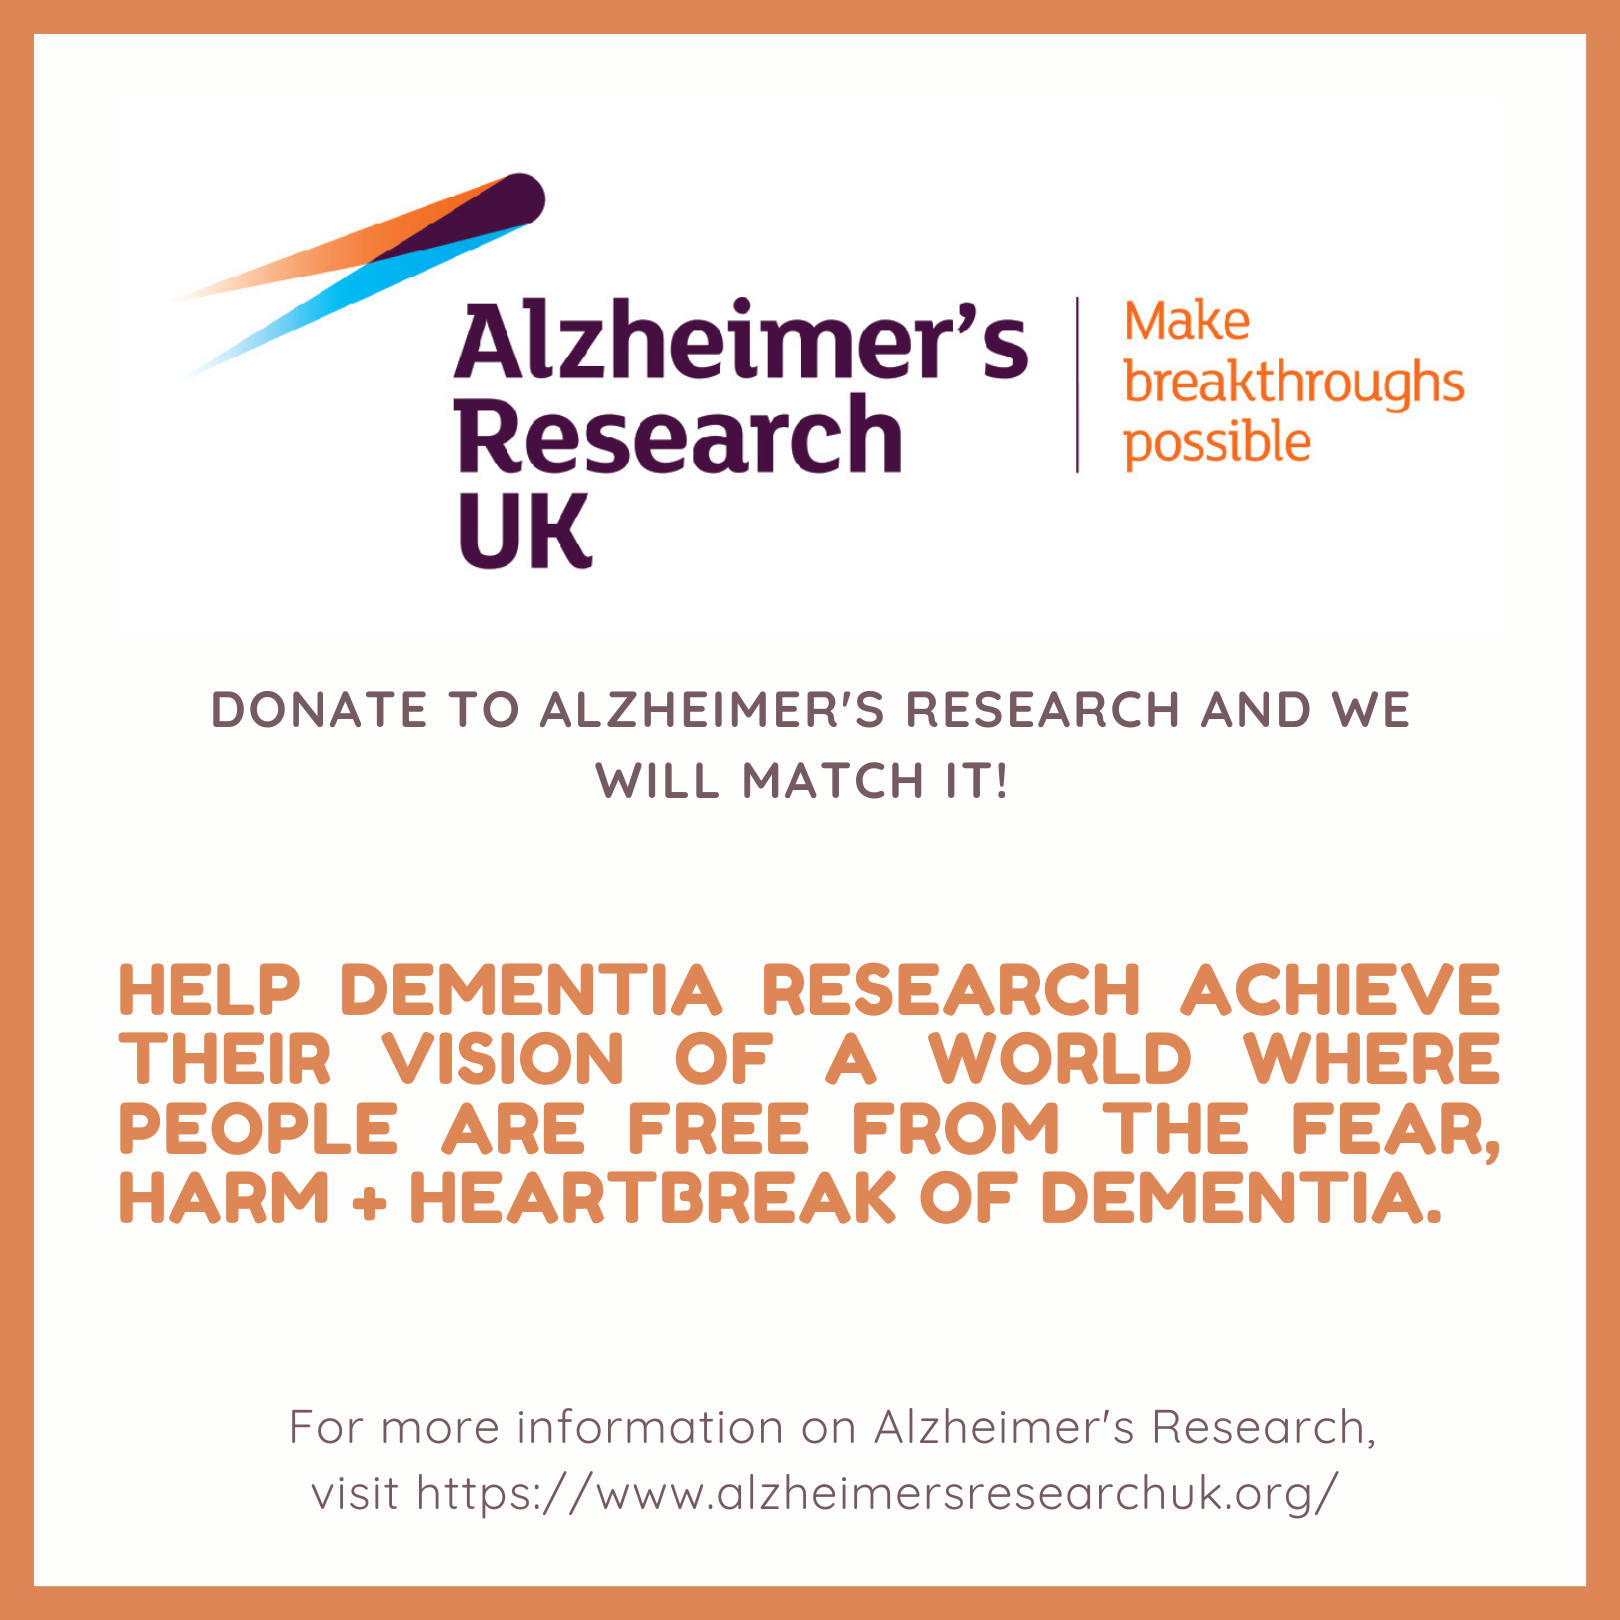 Make a donation and we will match it!